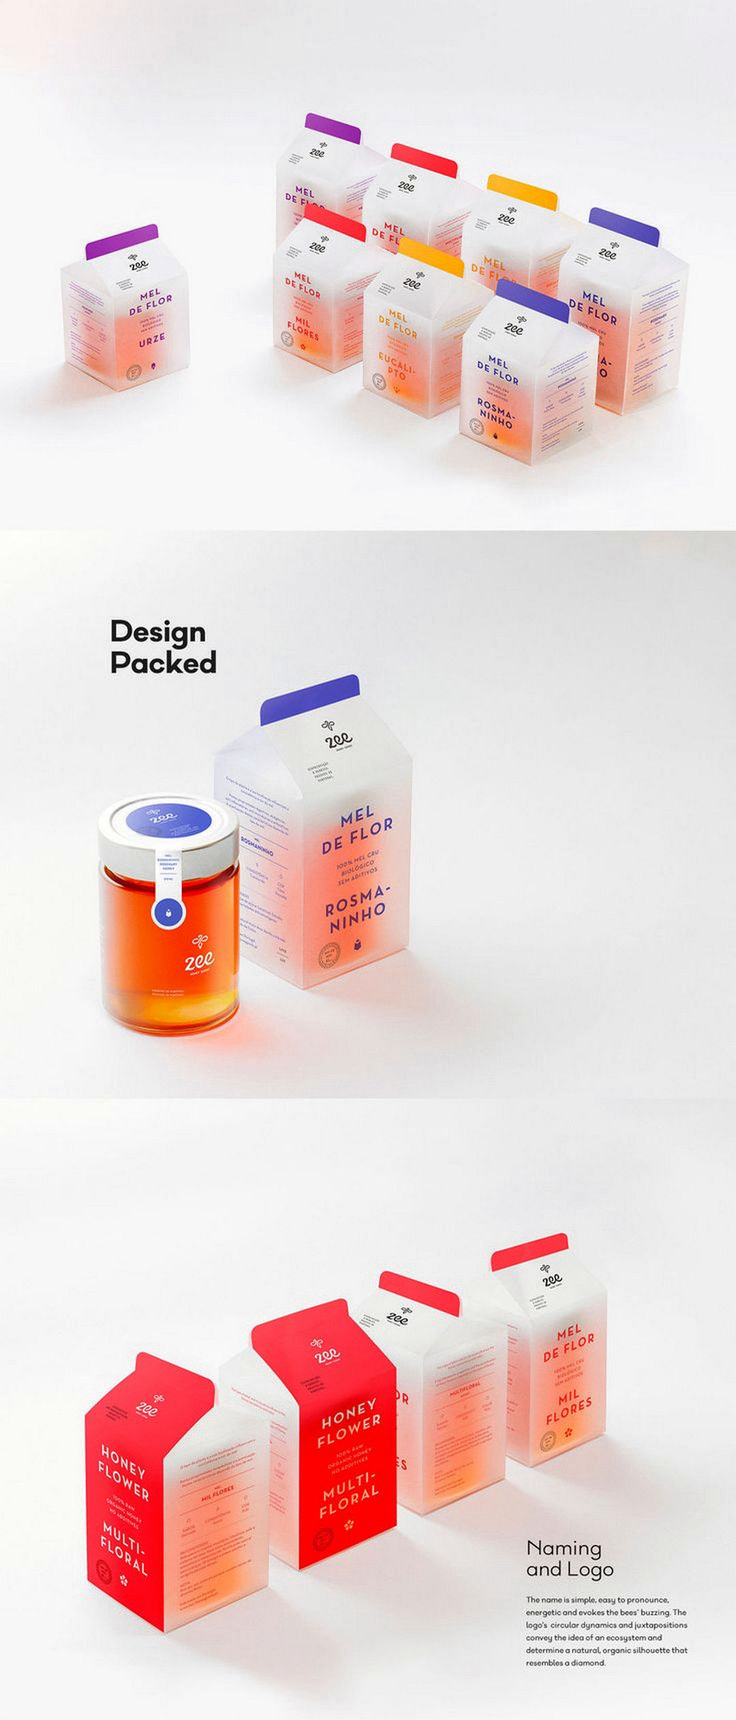 Here are Some of The Best Ways to Make a Flashy Packaging Design